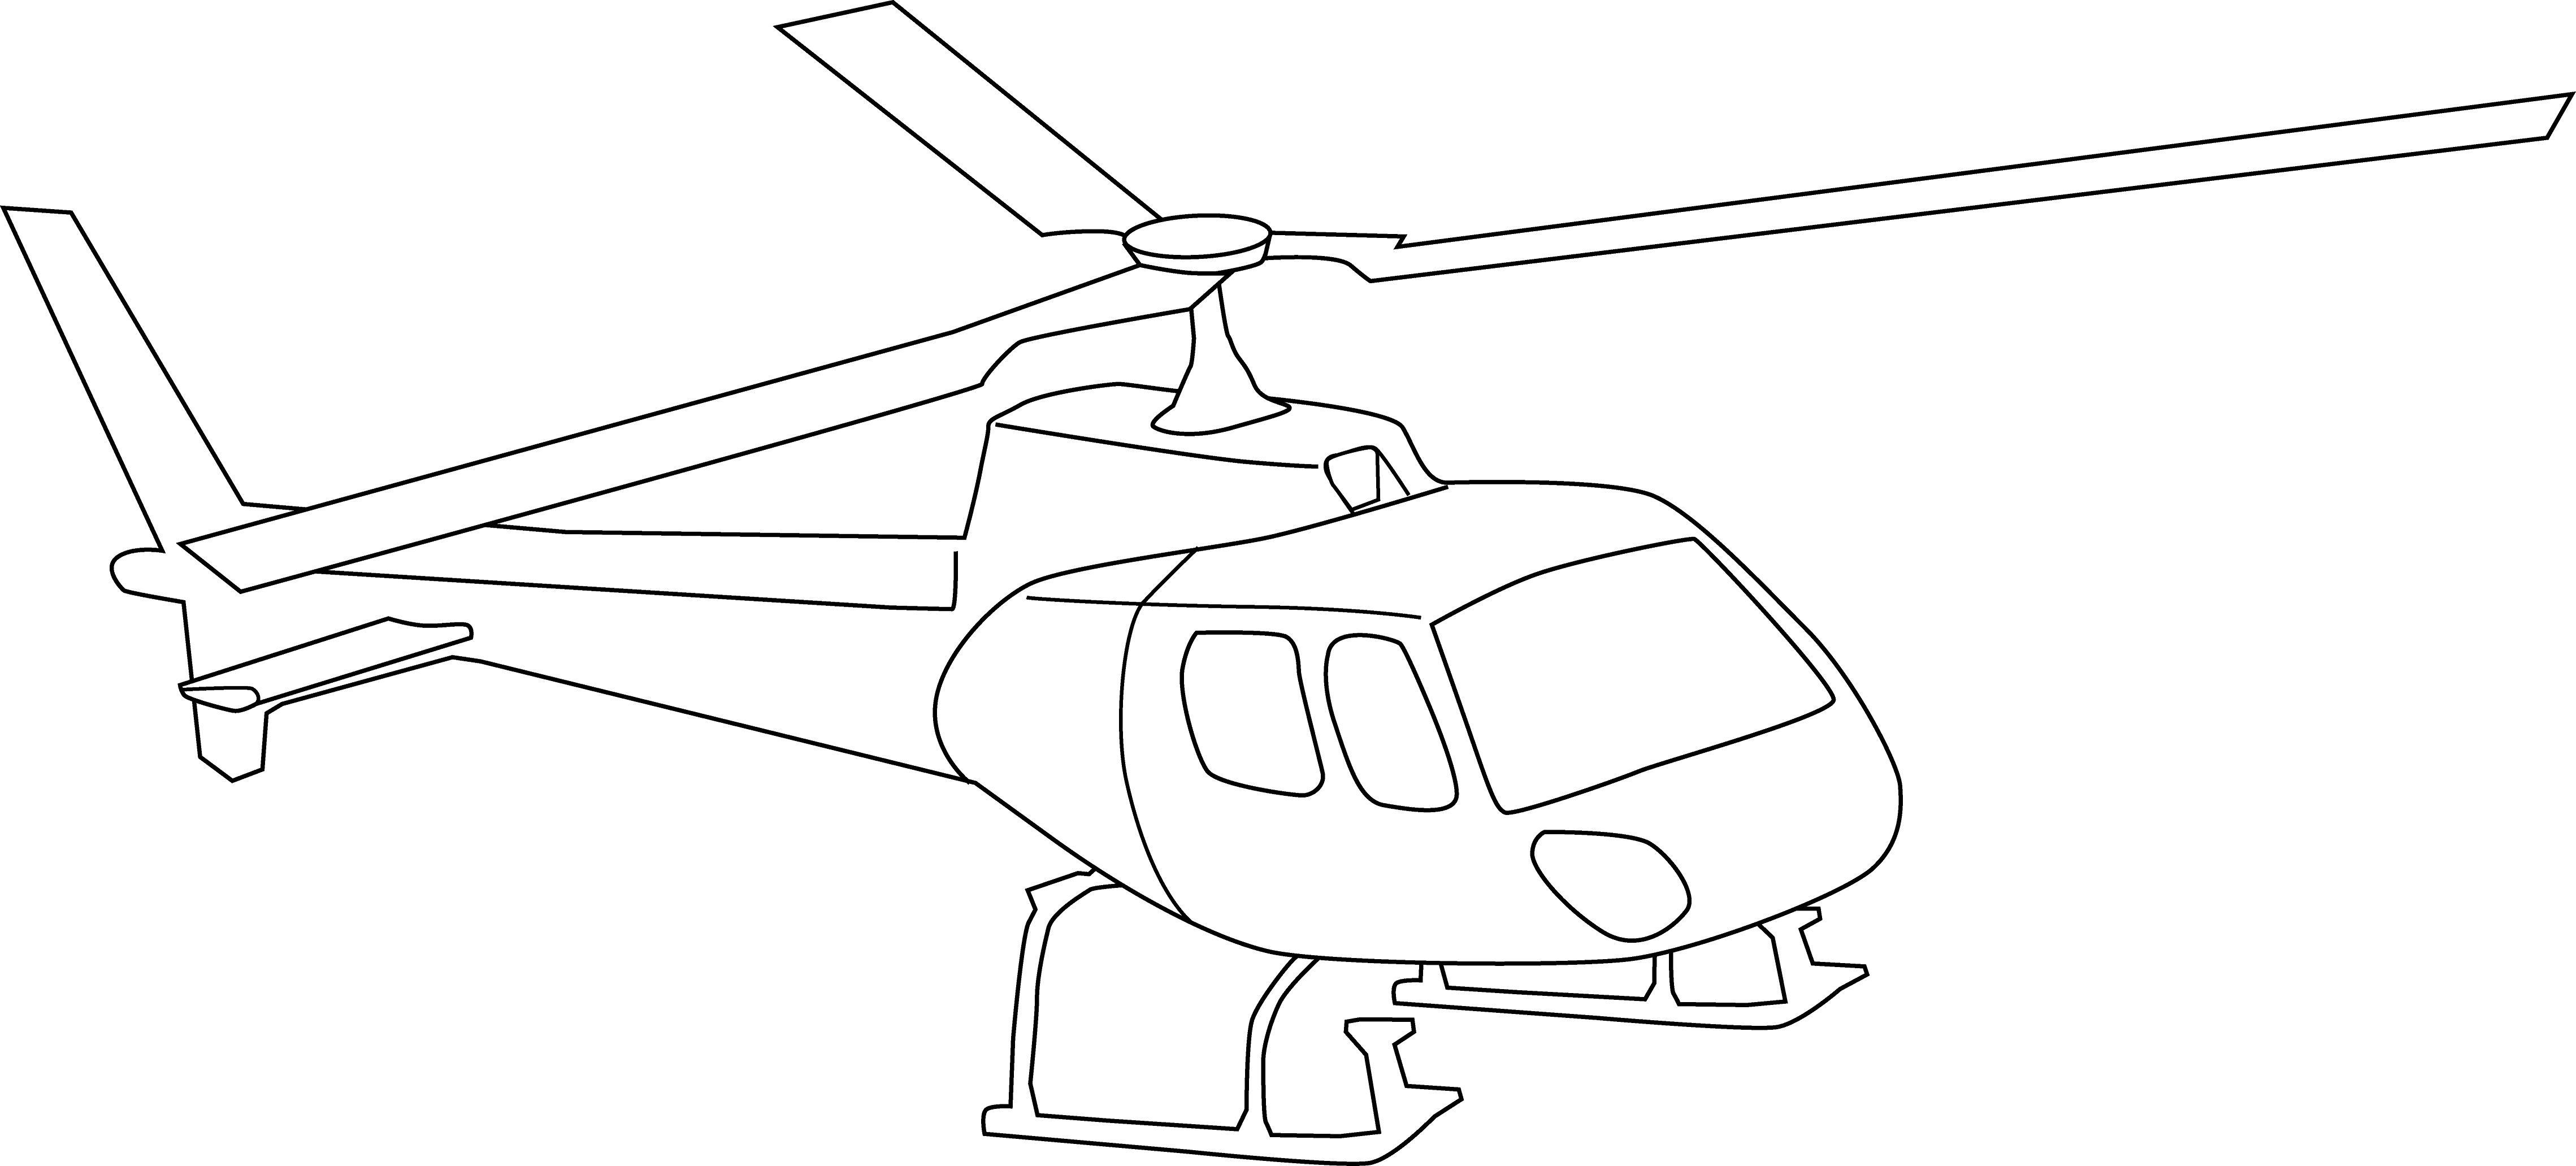 4558x2063 Drawing Clipart Helicopter 3239530